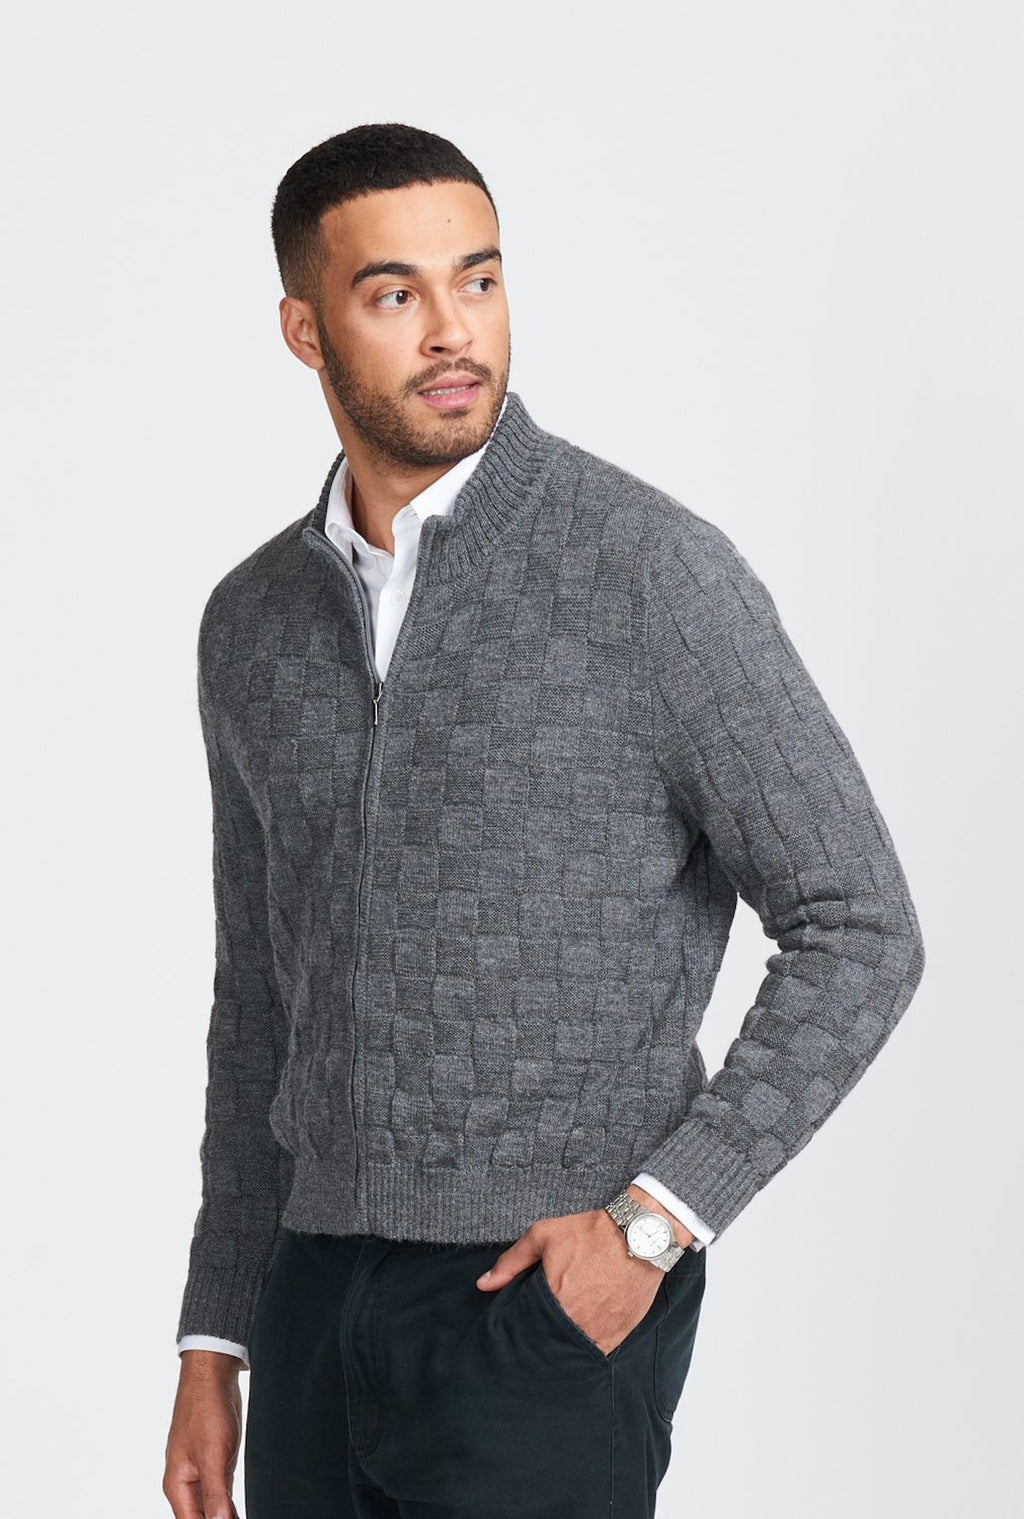 MENS CHECKERBOARD ZIP JACKET - Woolshed Gallery